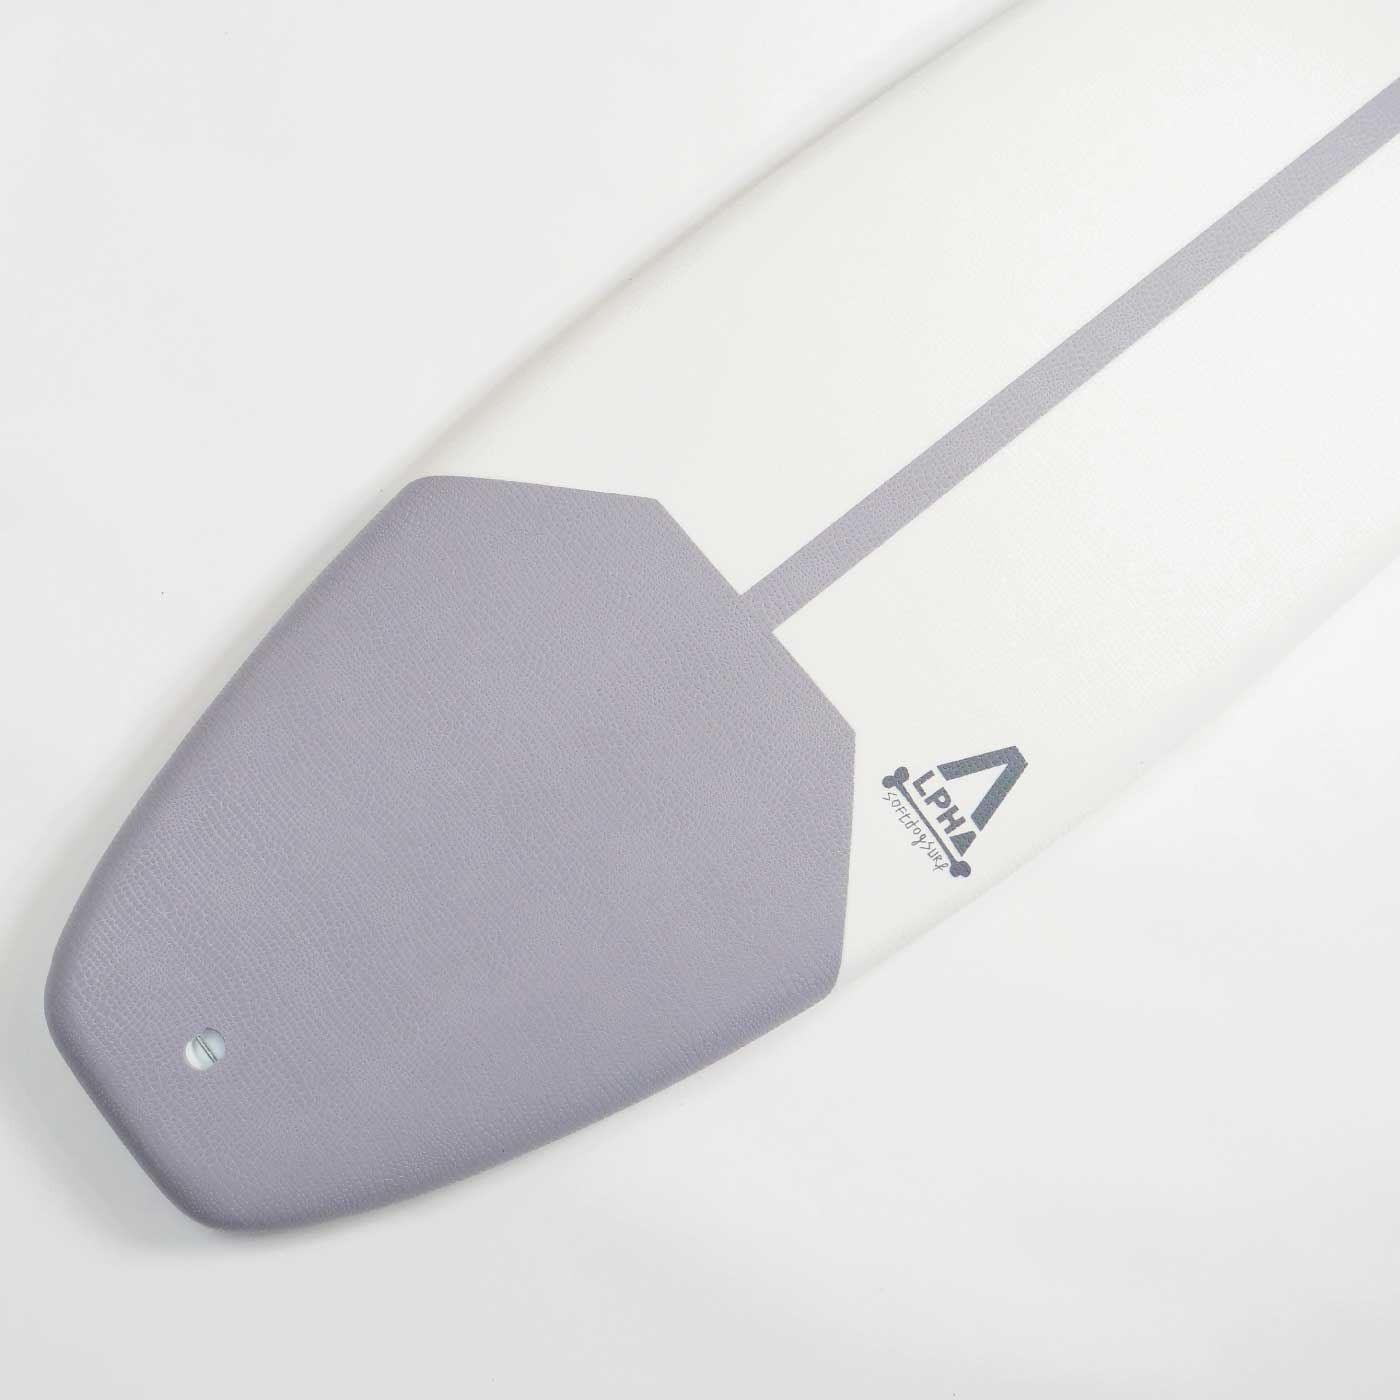 Alpha 4'10 | Soft Top Surfboard